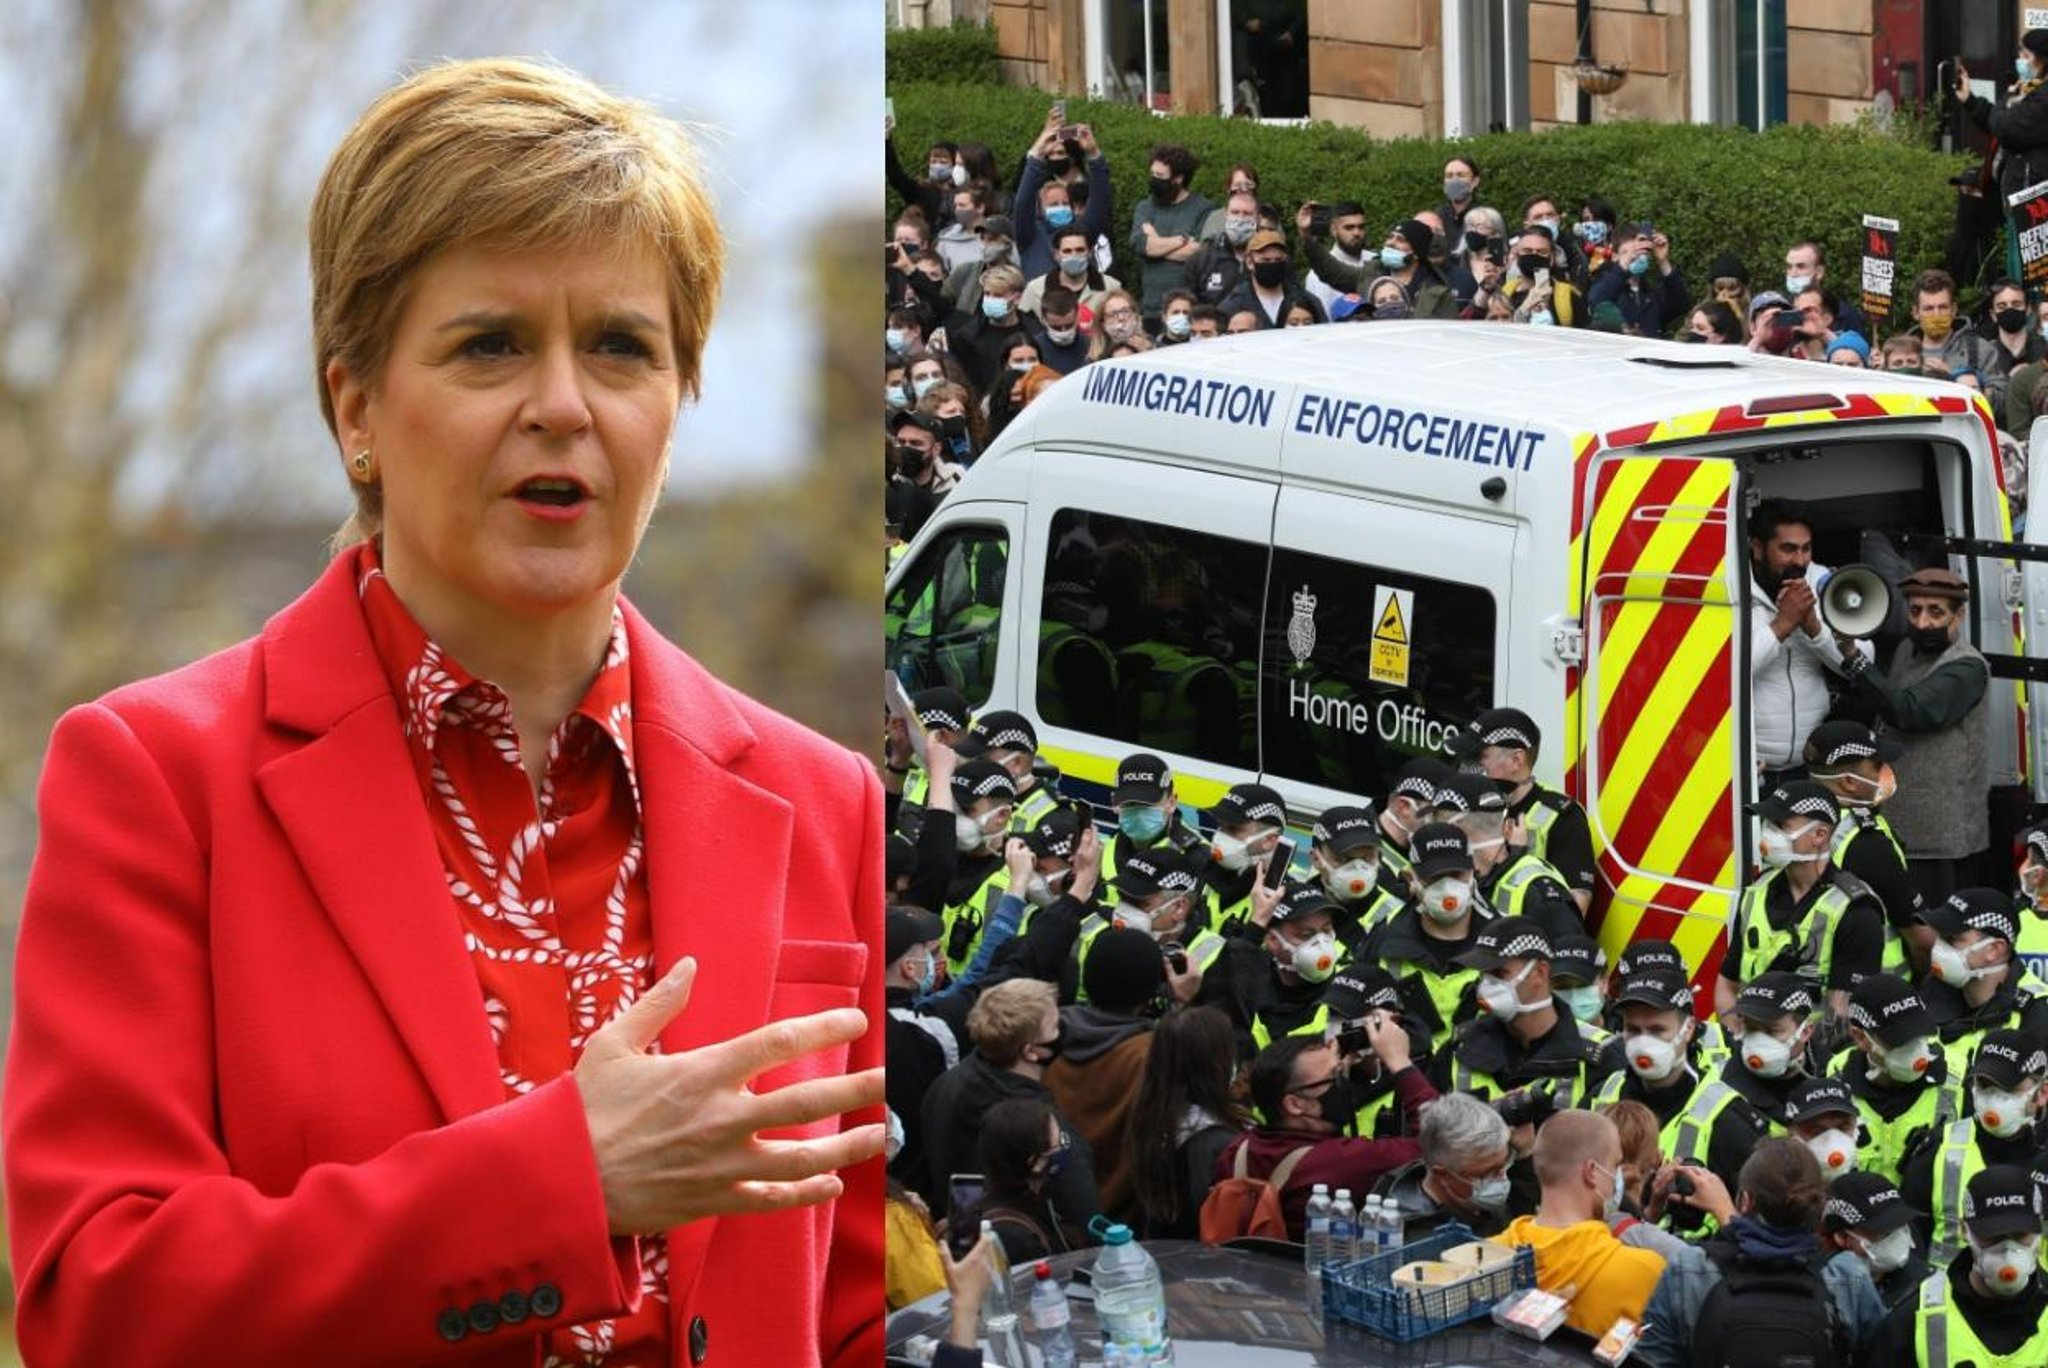 Kenmure Street: Nicola Sturgeon calls on Home Office to reflect after Glasgow detentions spark protests